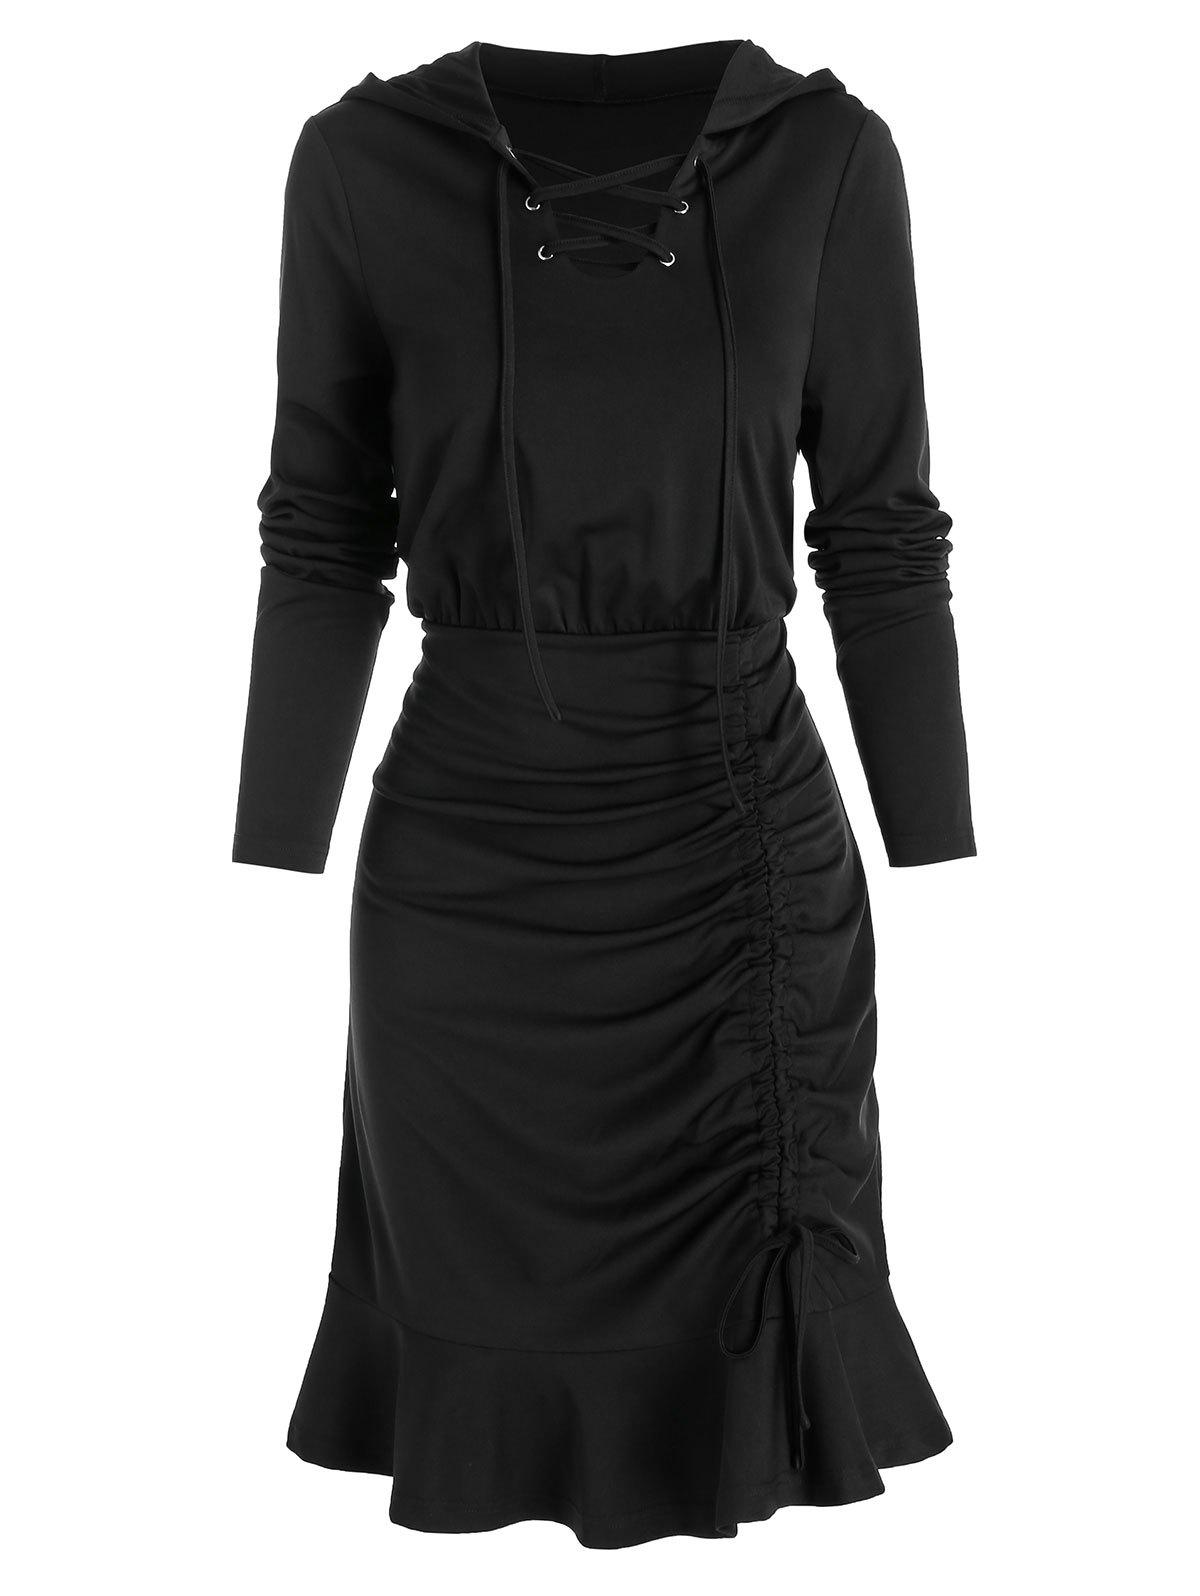 Hooded Cinched Lace-up Sheath Dress - BLACK 2XL